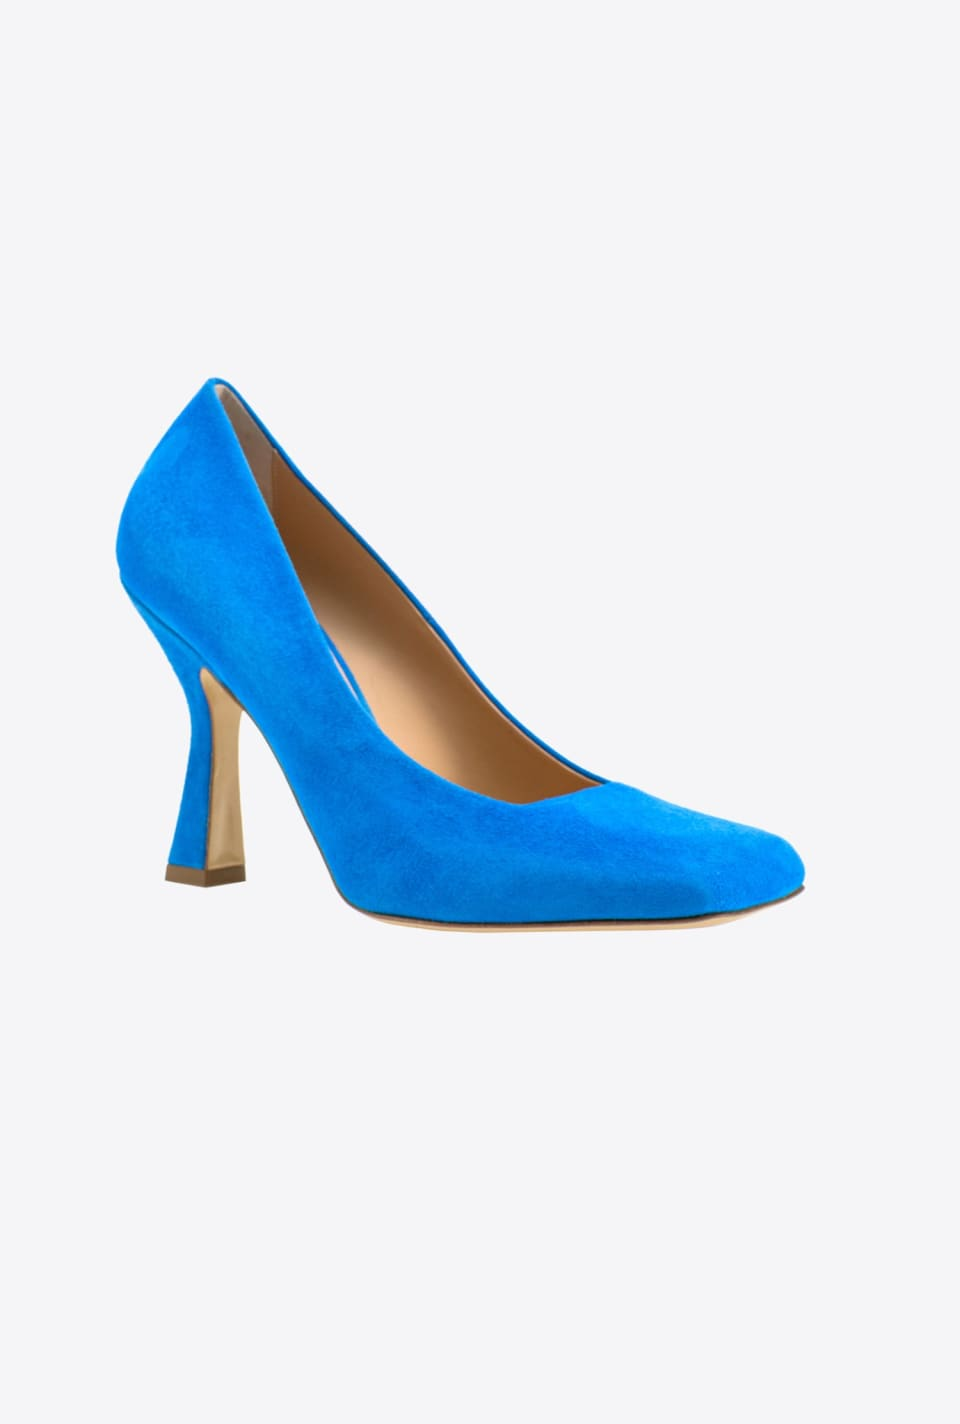 Square toe suede pumps - Pinko